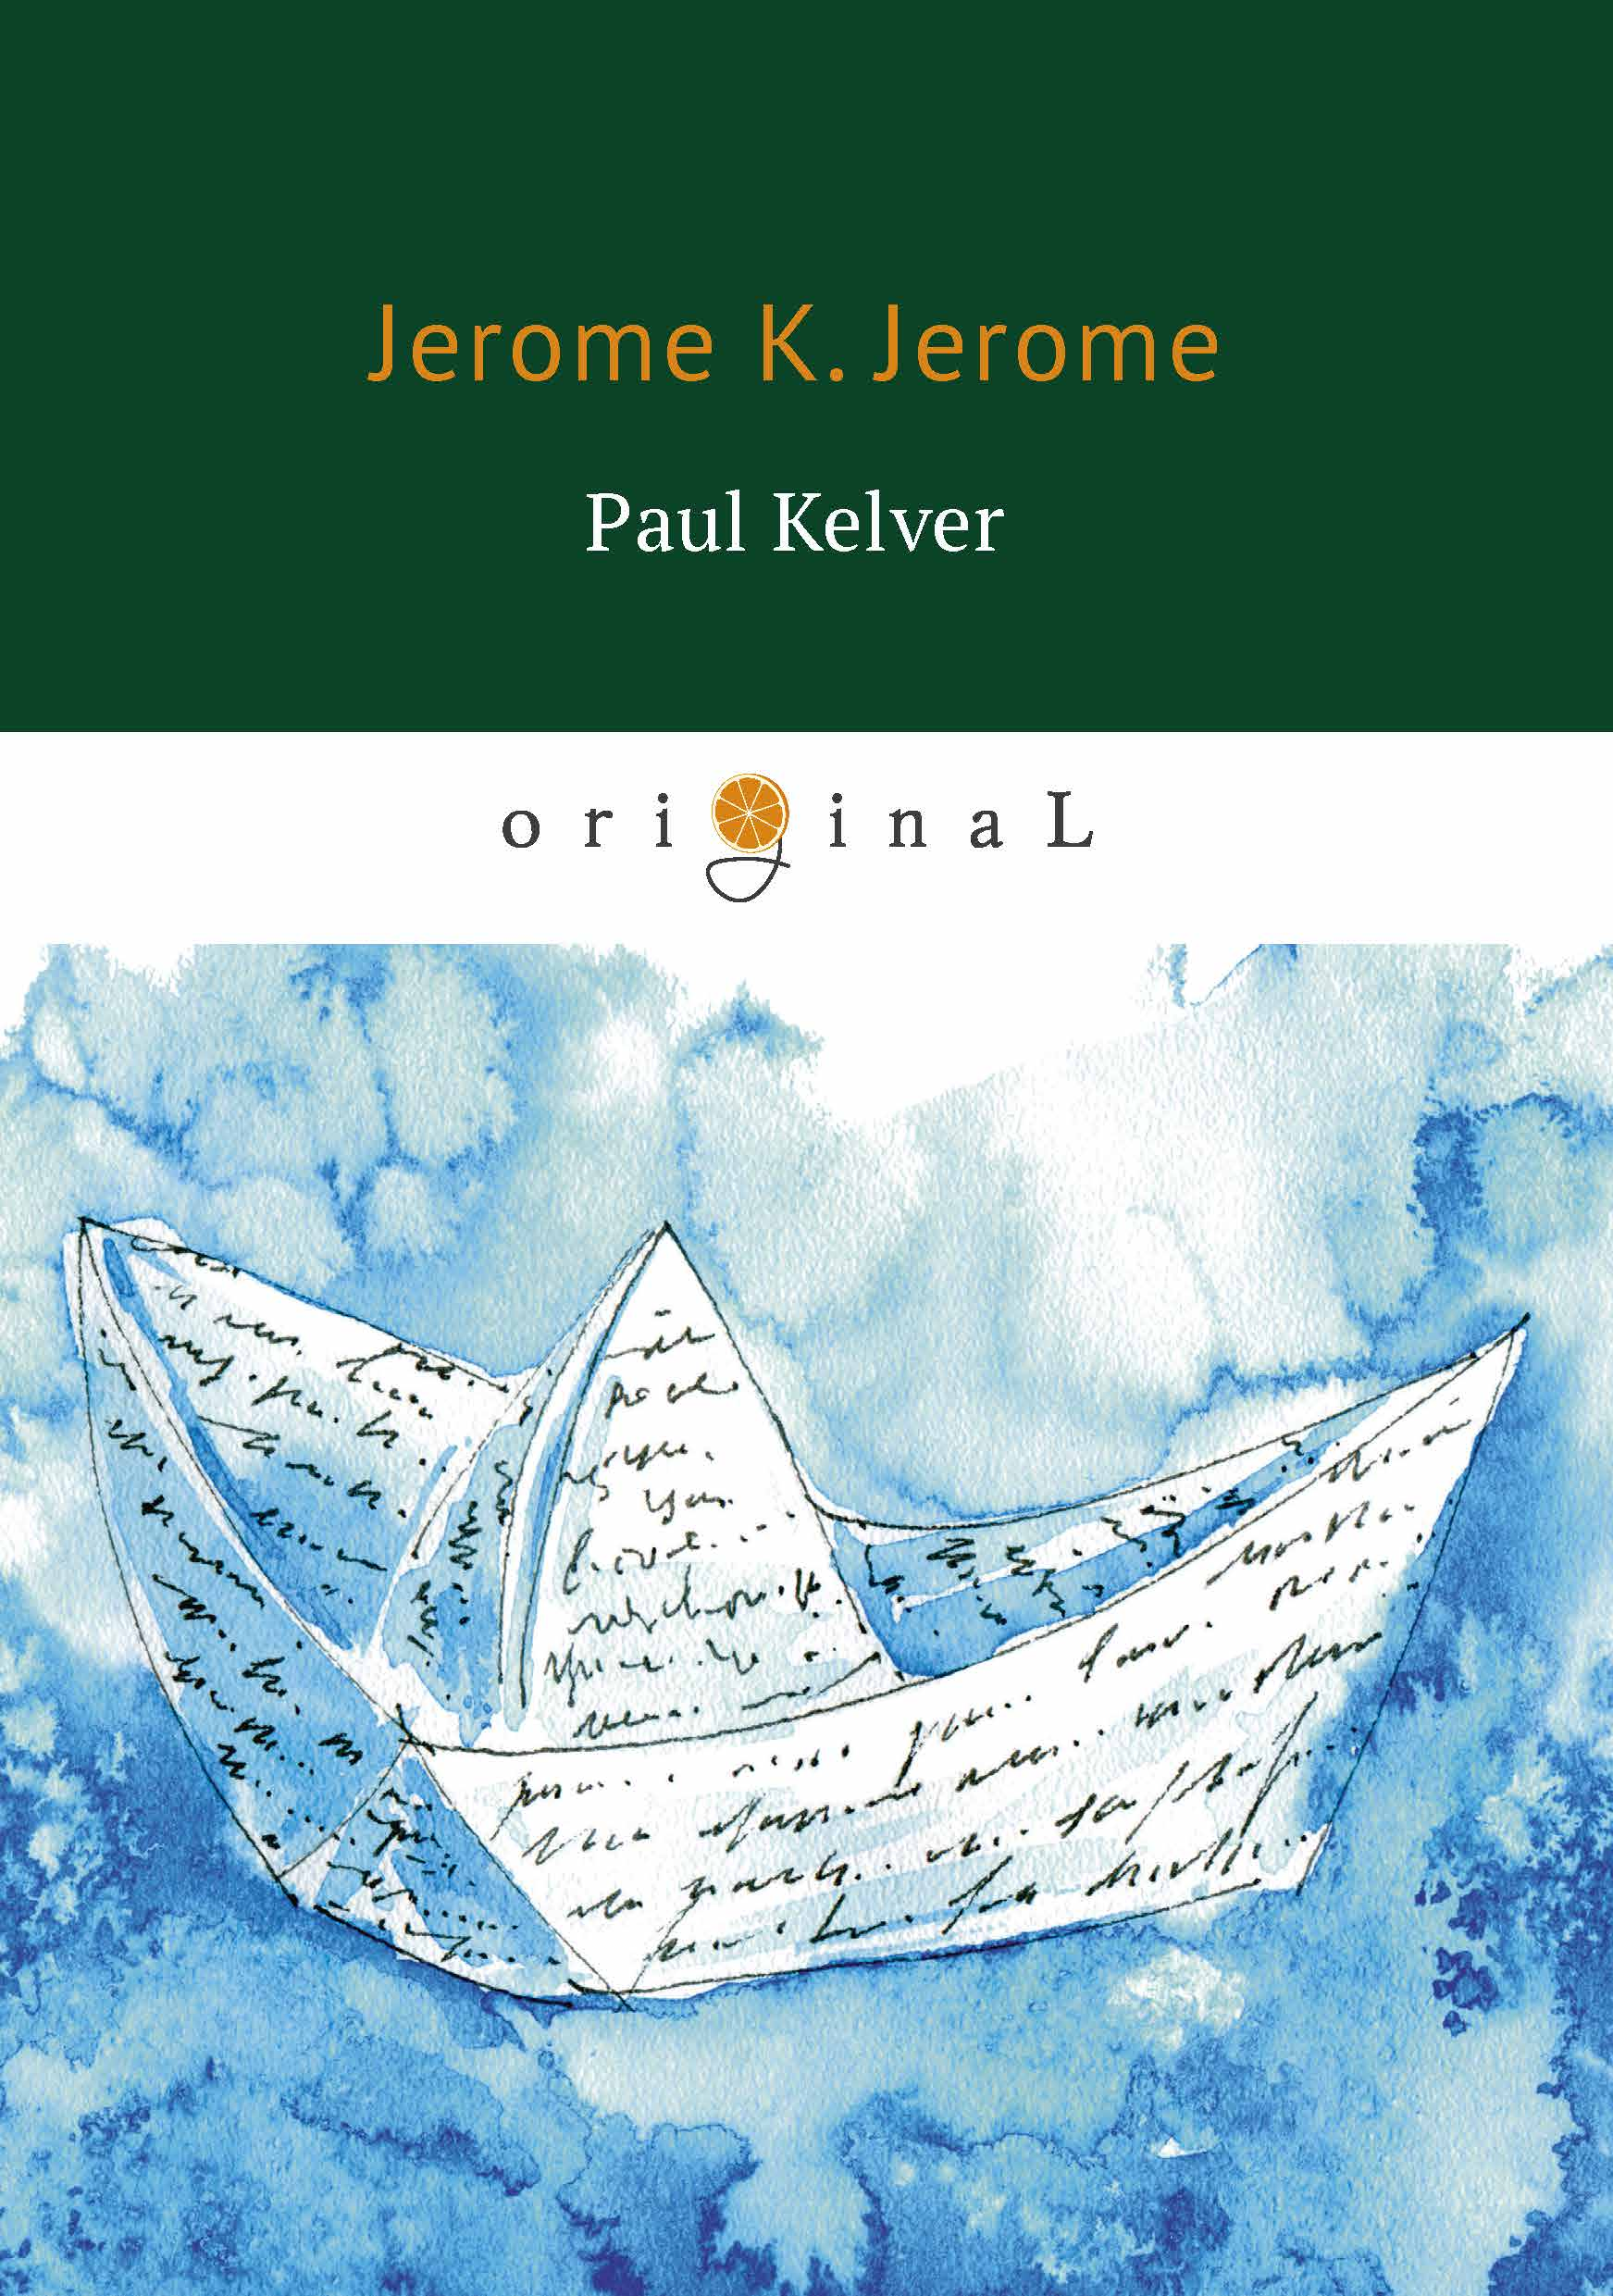 Jerome K. Jerome Paul Kelver бодо шефер кира и секрет бублика формирование характера за 7 шагов